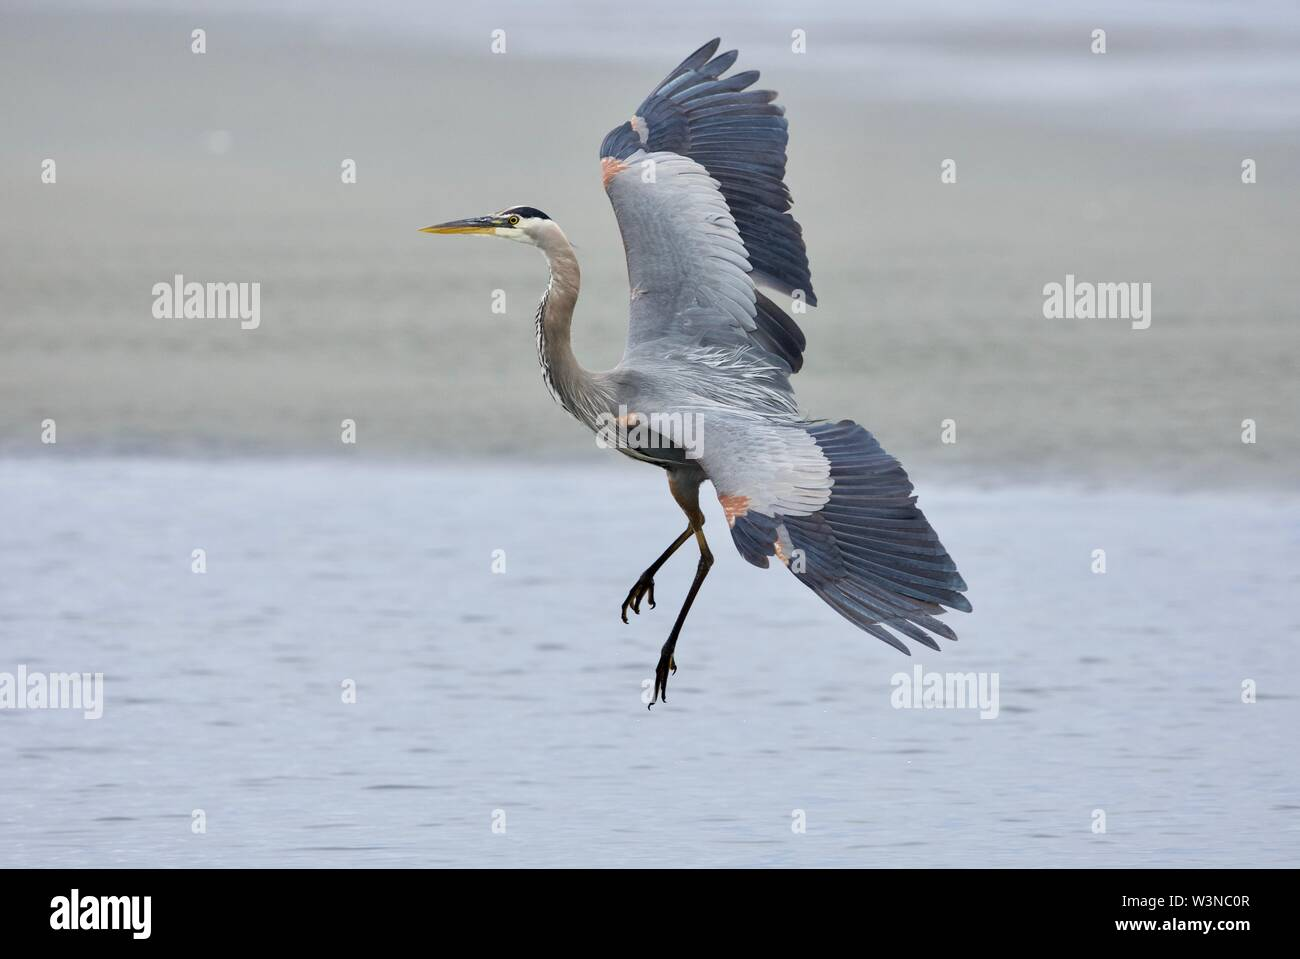 Great blue heron shows its lovely plumage as it lands in a tide pool, Witty's Lagoon, Vancouver Island, British Columbia. - Stock Image